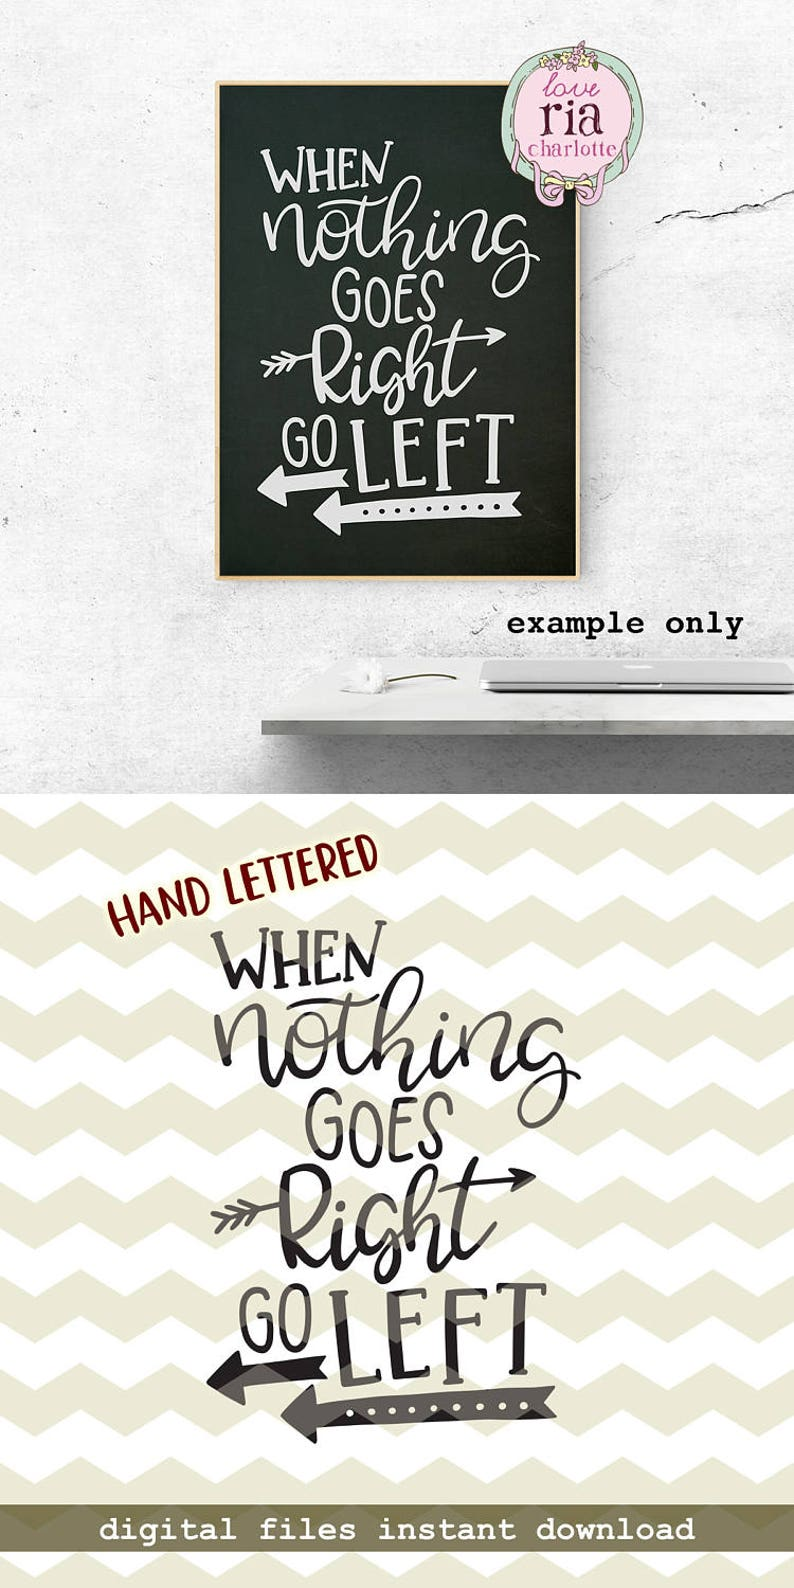 d3ee5cced When nothing goes right go left fun funny quirky quote | Etsy